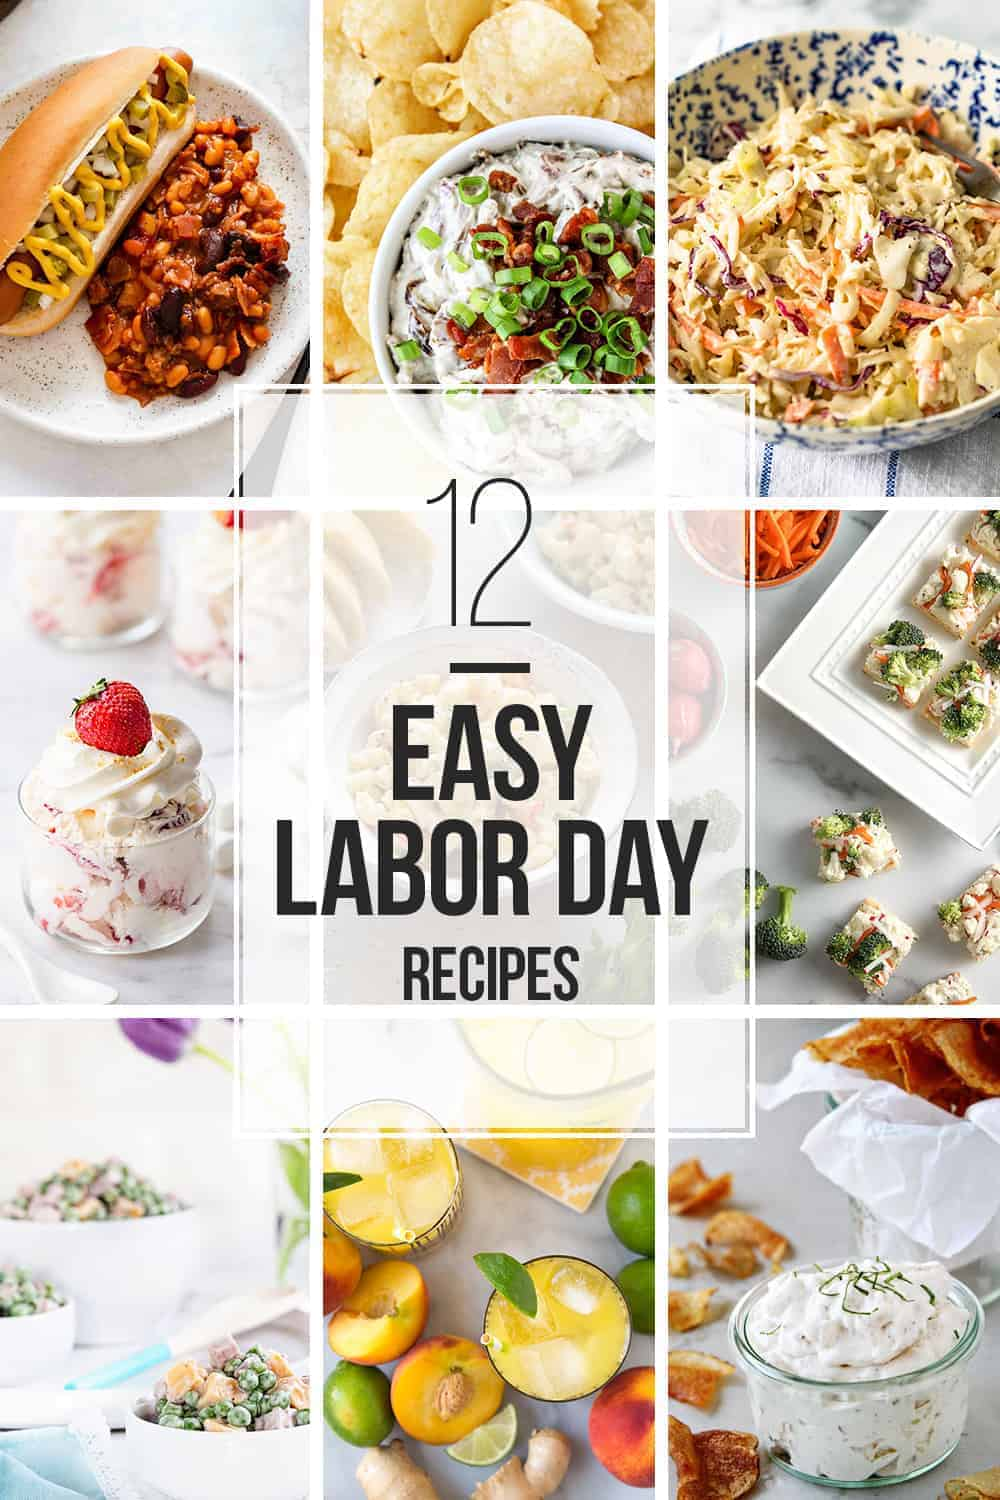 12 Easy Labor Day Recipes